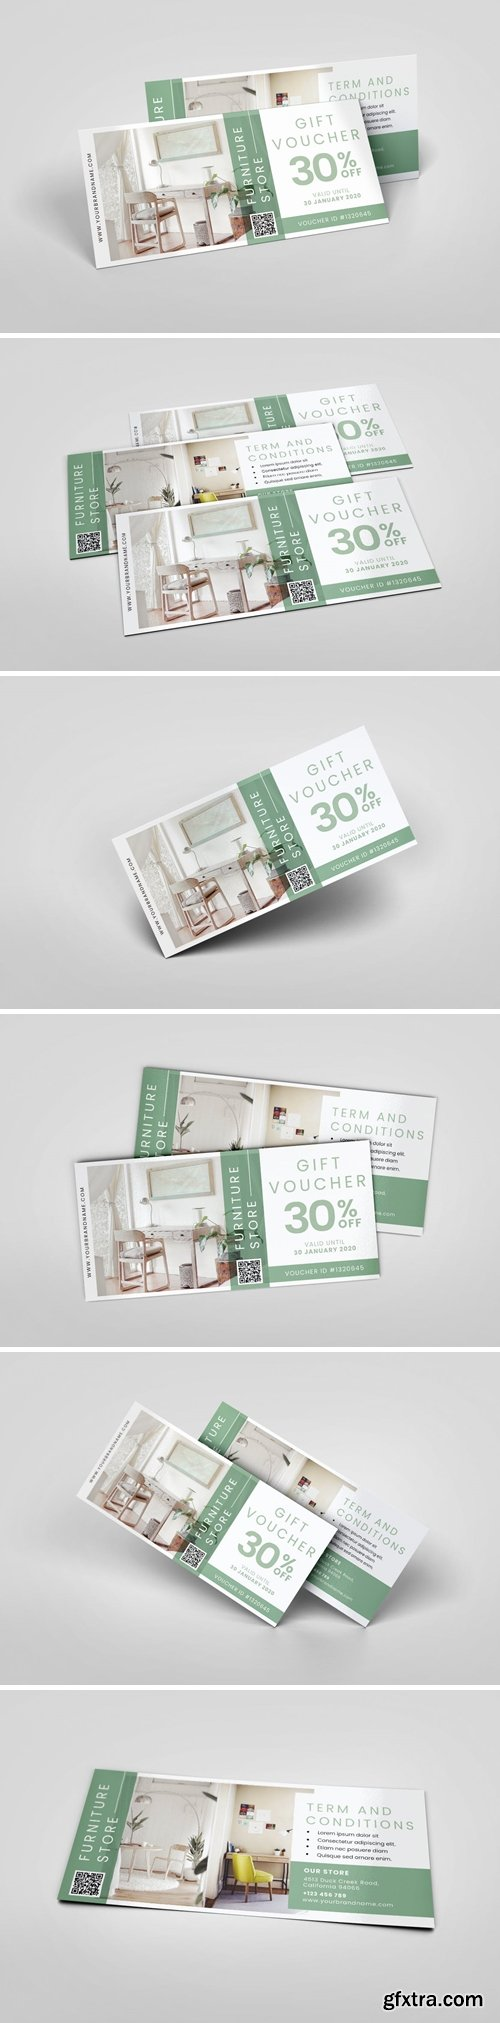 Furniture Store AI and PSD Gift Voucher Template